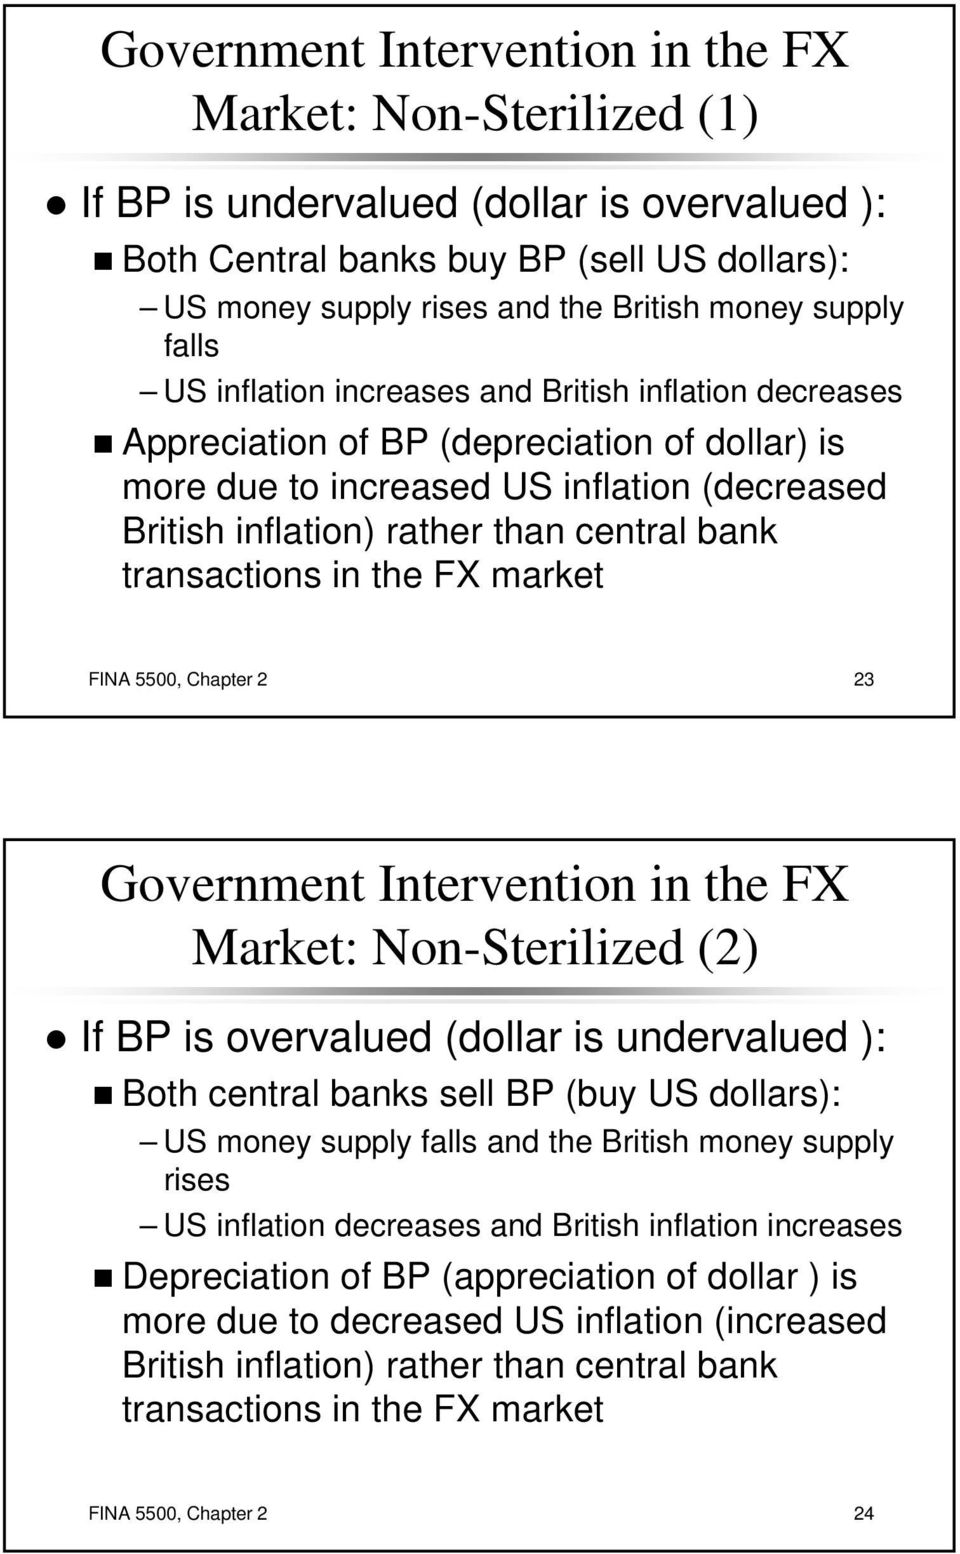 bank transactions in the FX market FINA 5500, Chapter 2 23 Government Intervention in the FX Market: Non-Sterilized (2) If BP is overvalued (dollar is undervalued ): Both central banks sell BP (buy